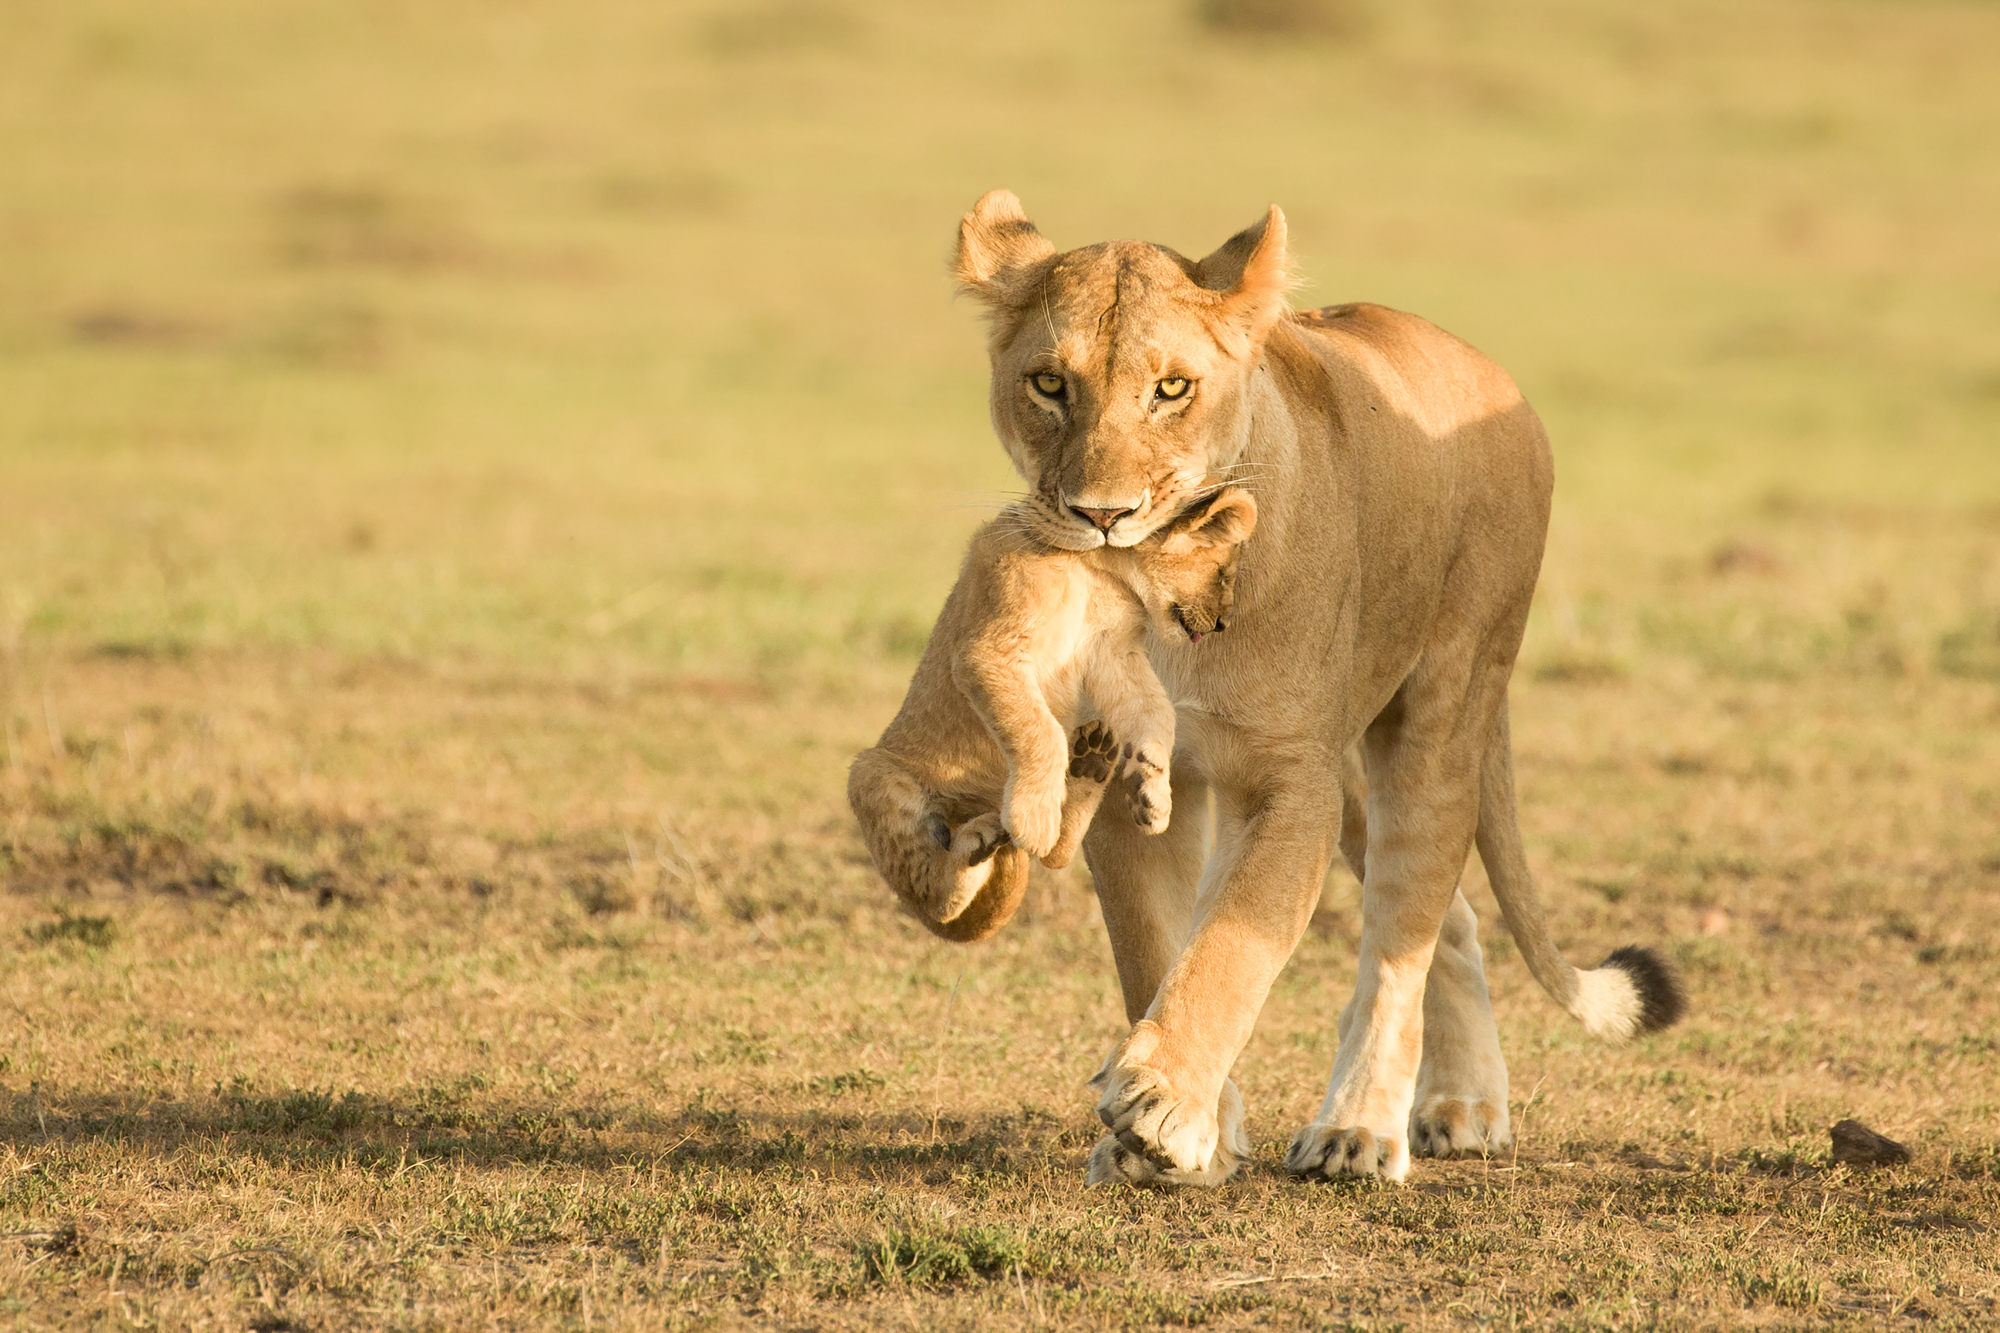 A lioness carrying her young cub